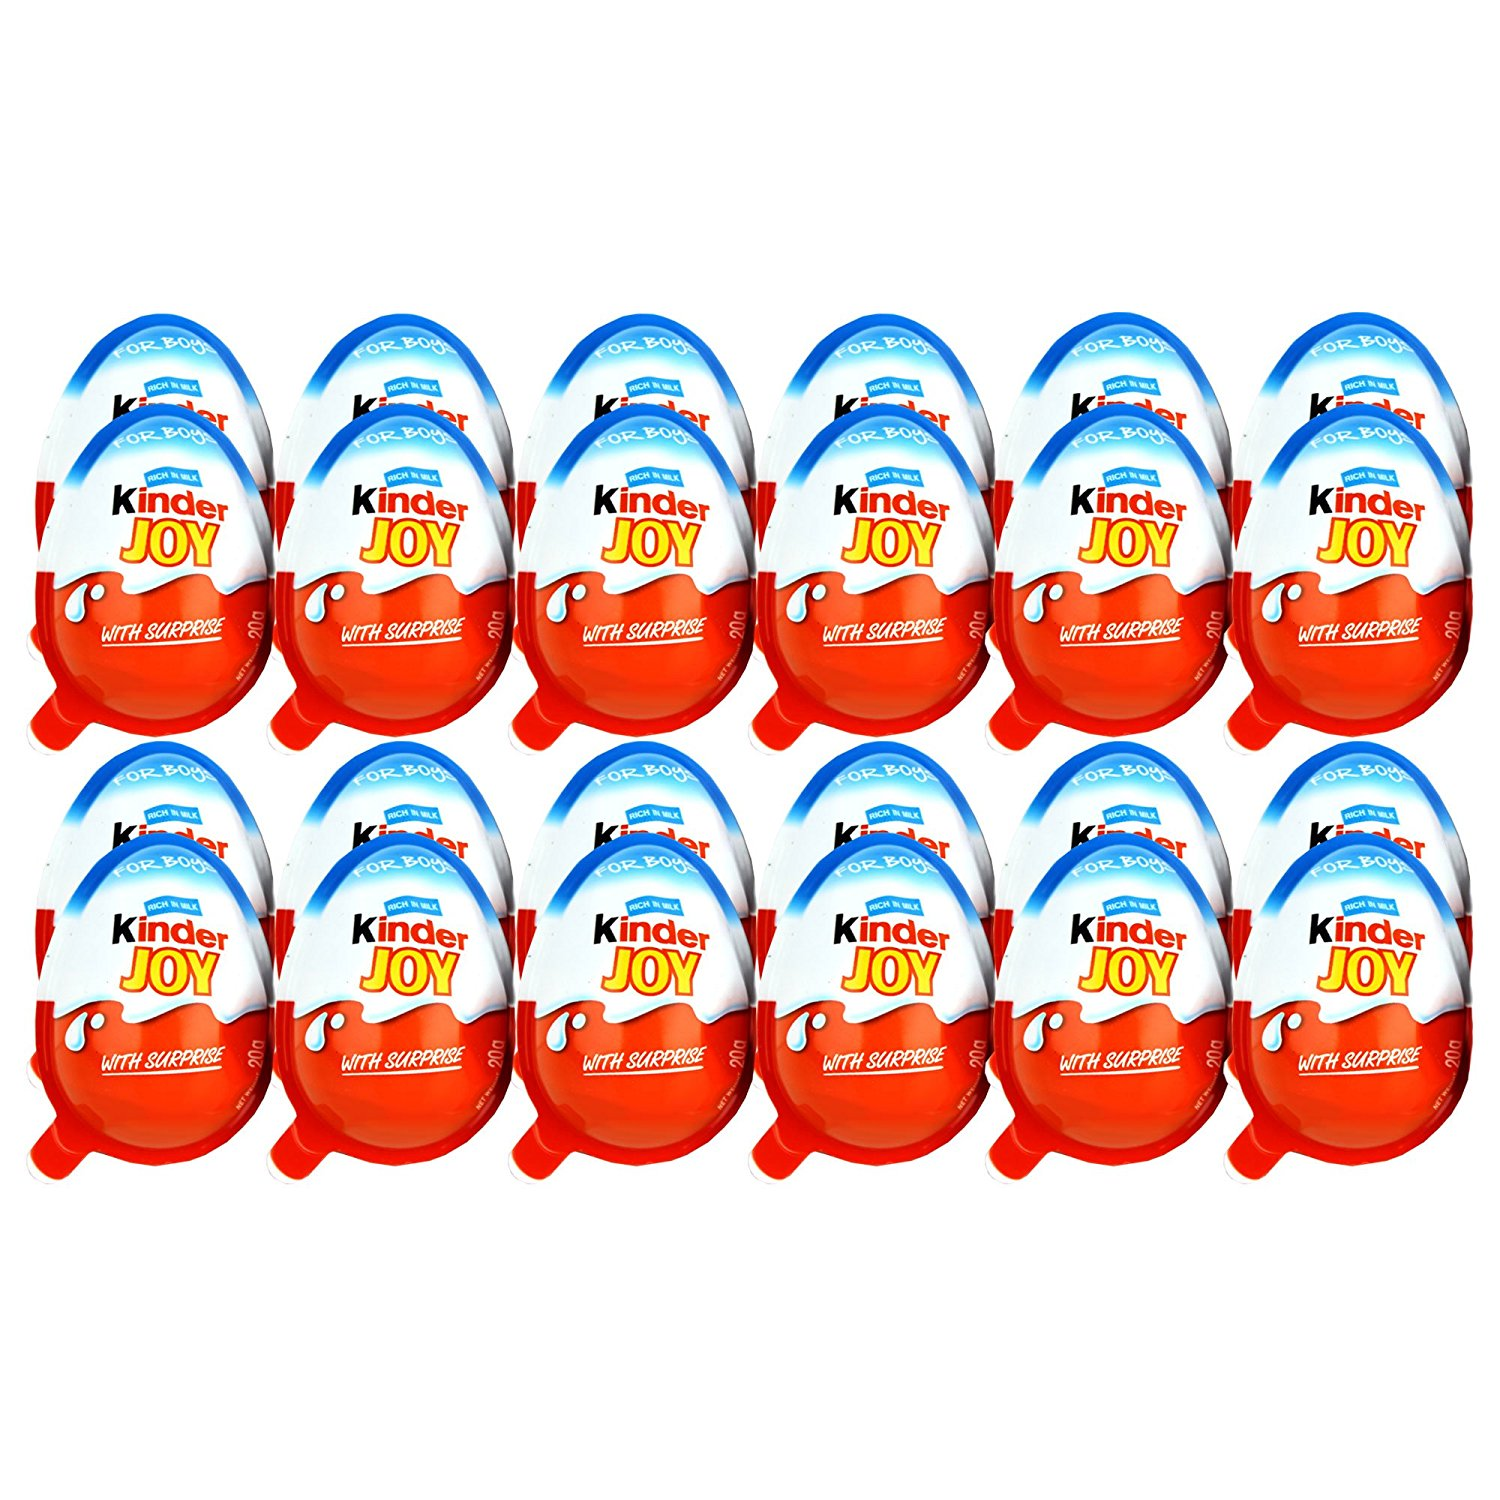 Gift Hampers Kinder Joy Chocolates For Boys 24 Pieces Only Tropicana Slim Stevia